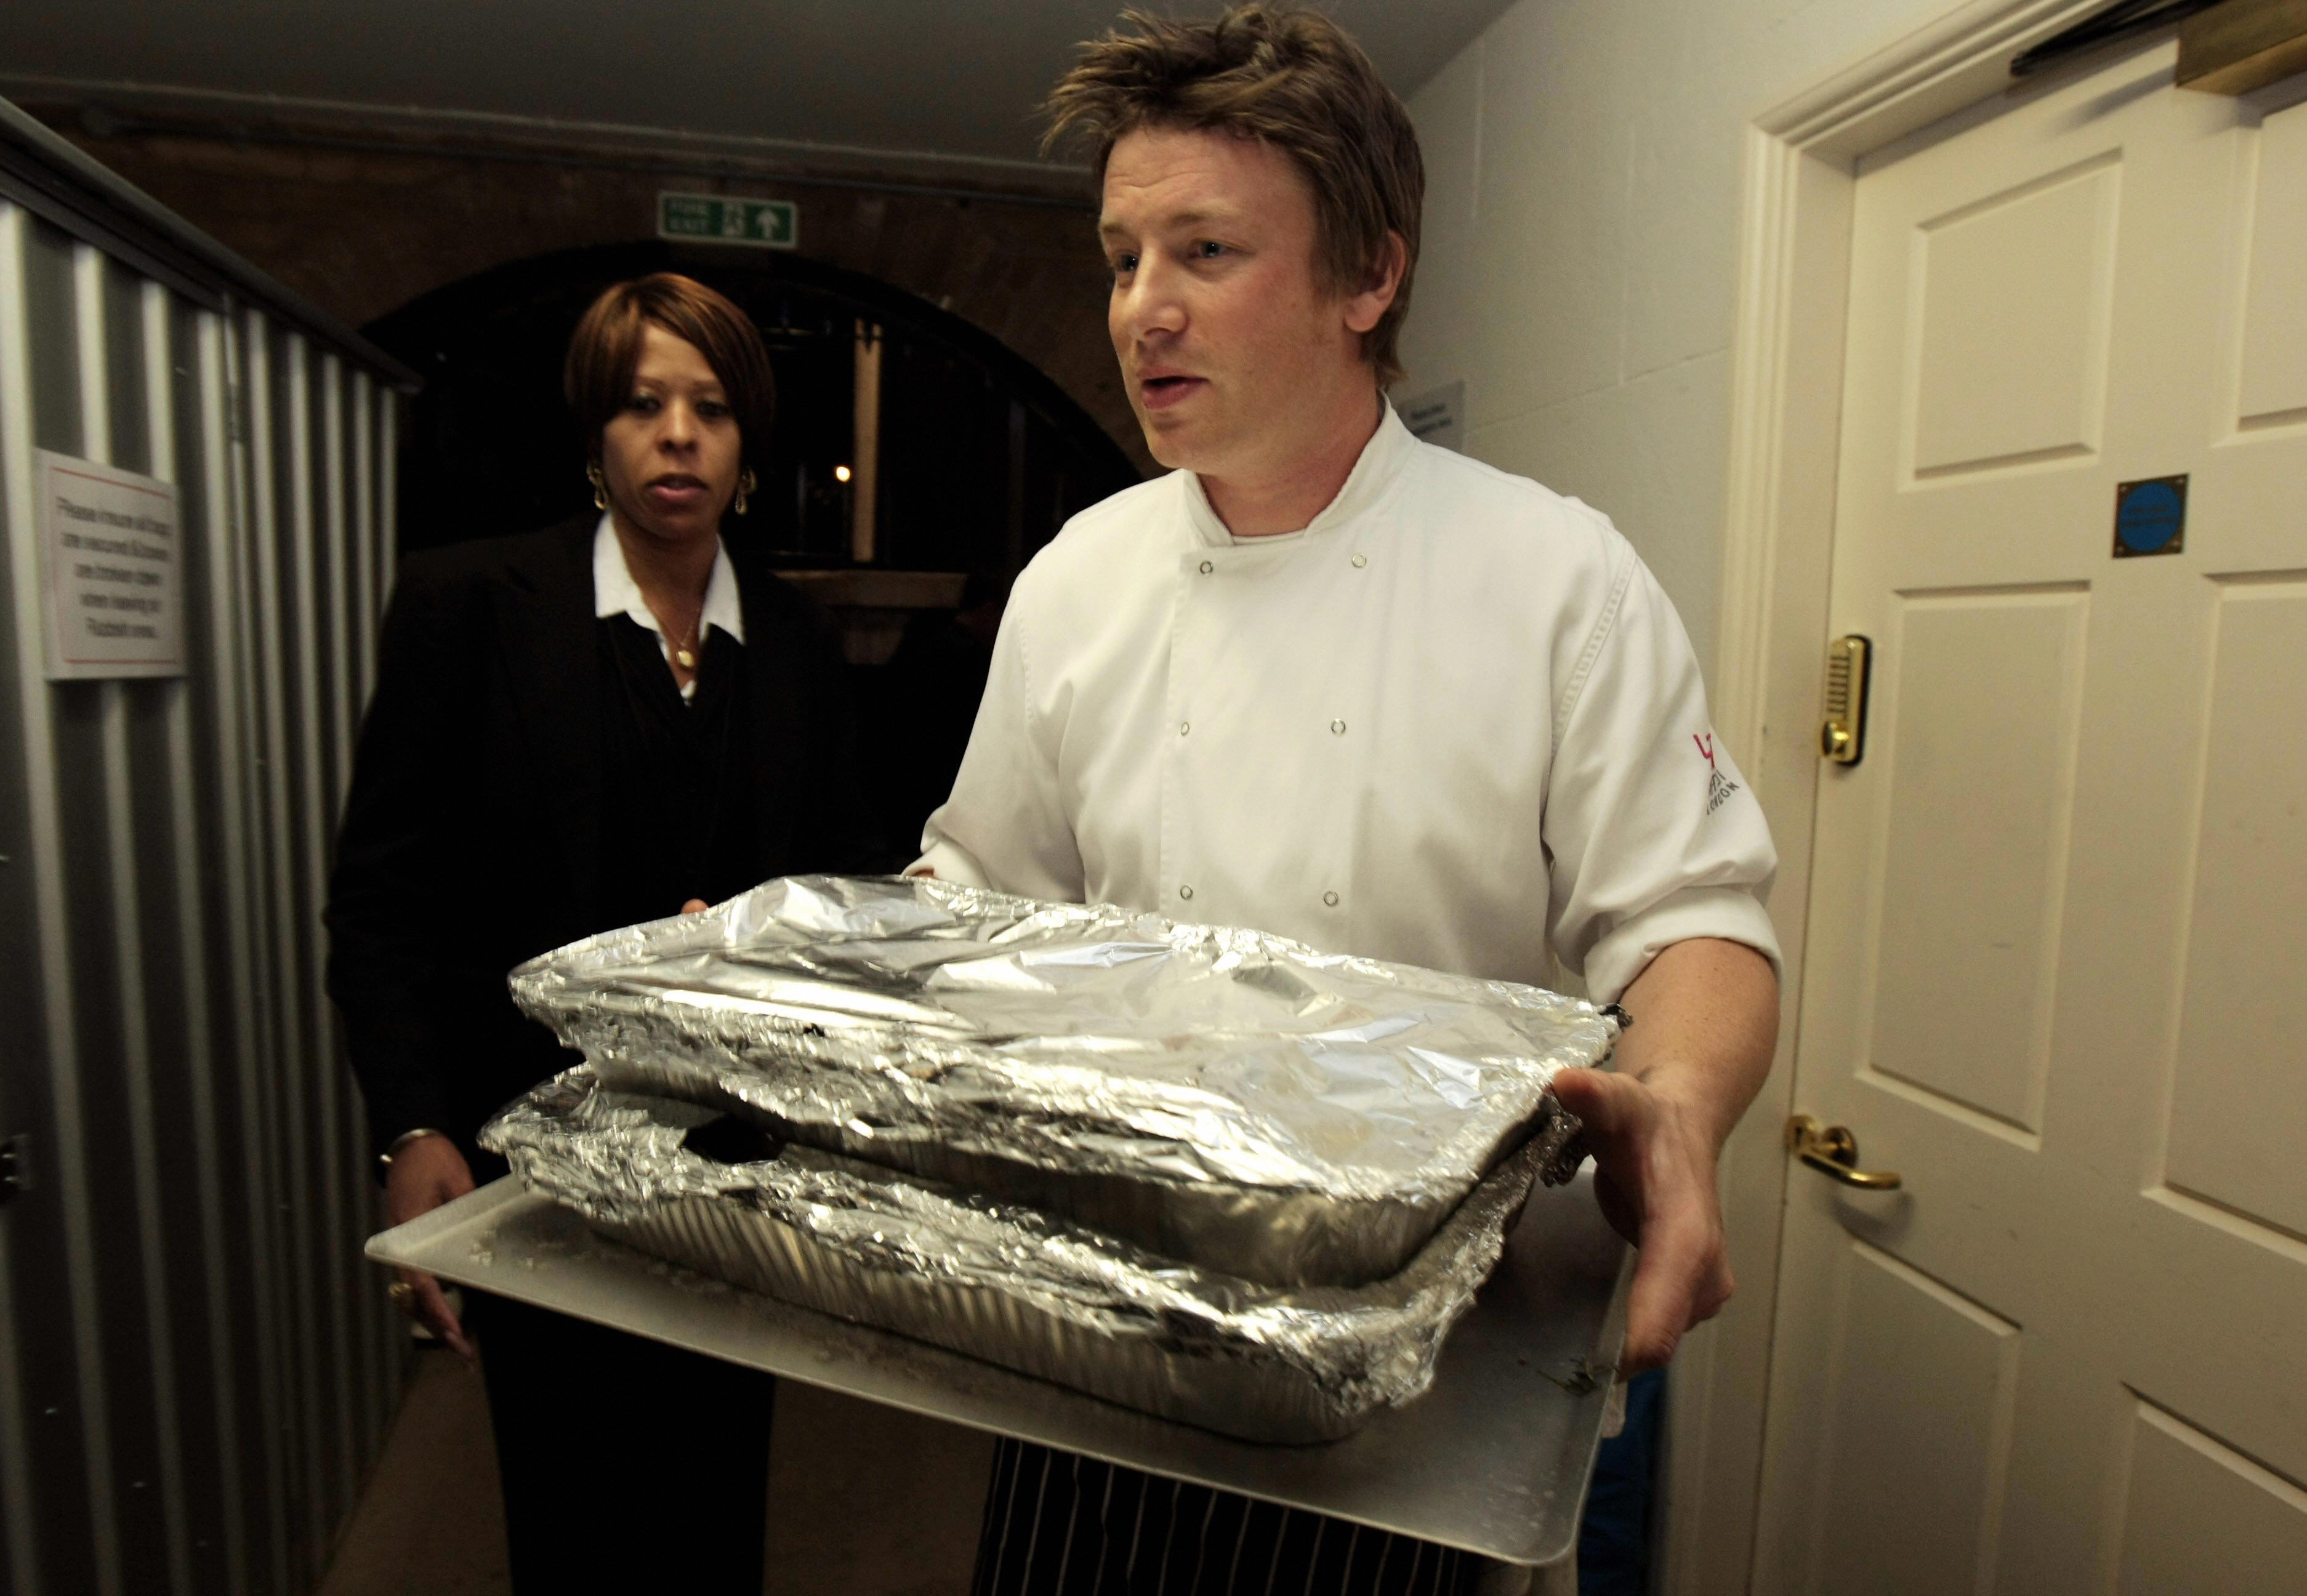 British celebrity Chef Jamie Oliver carries food